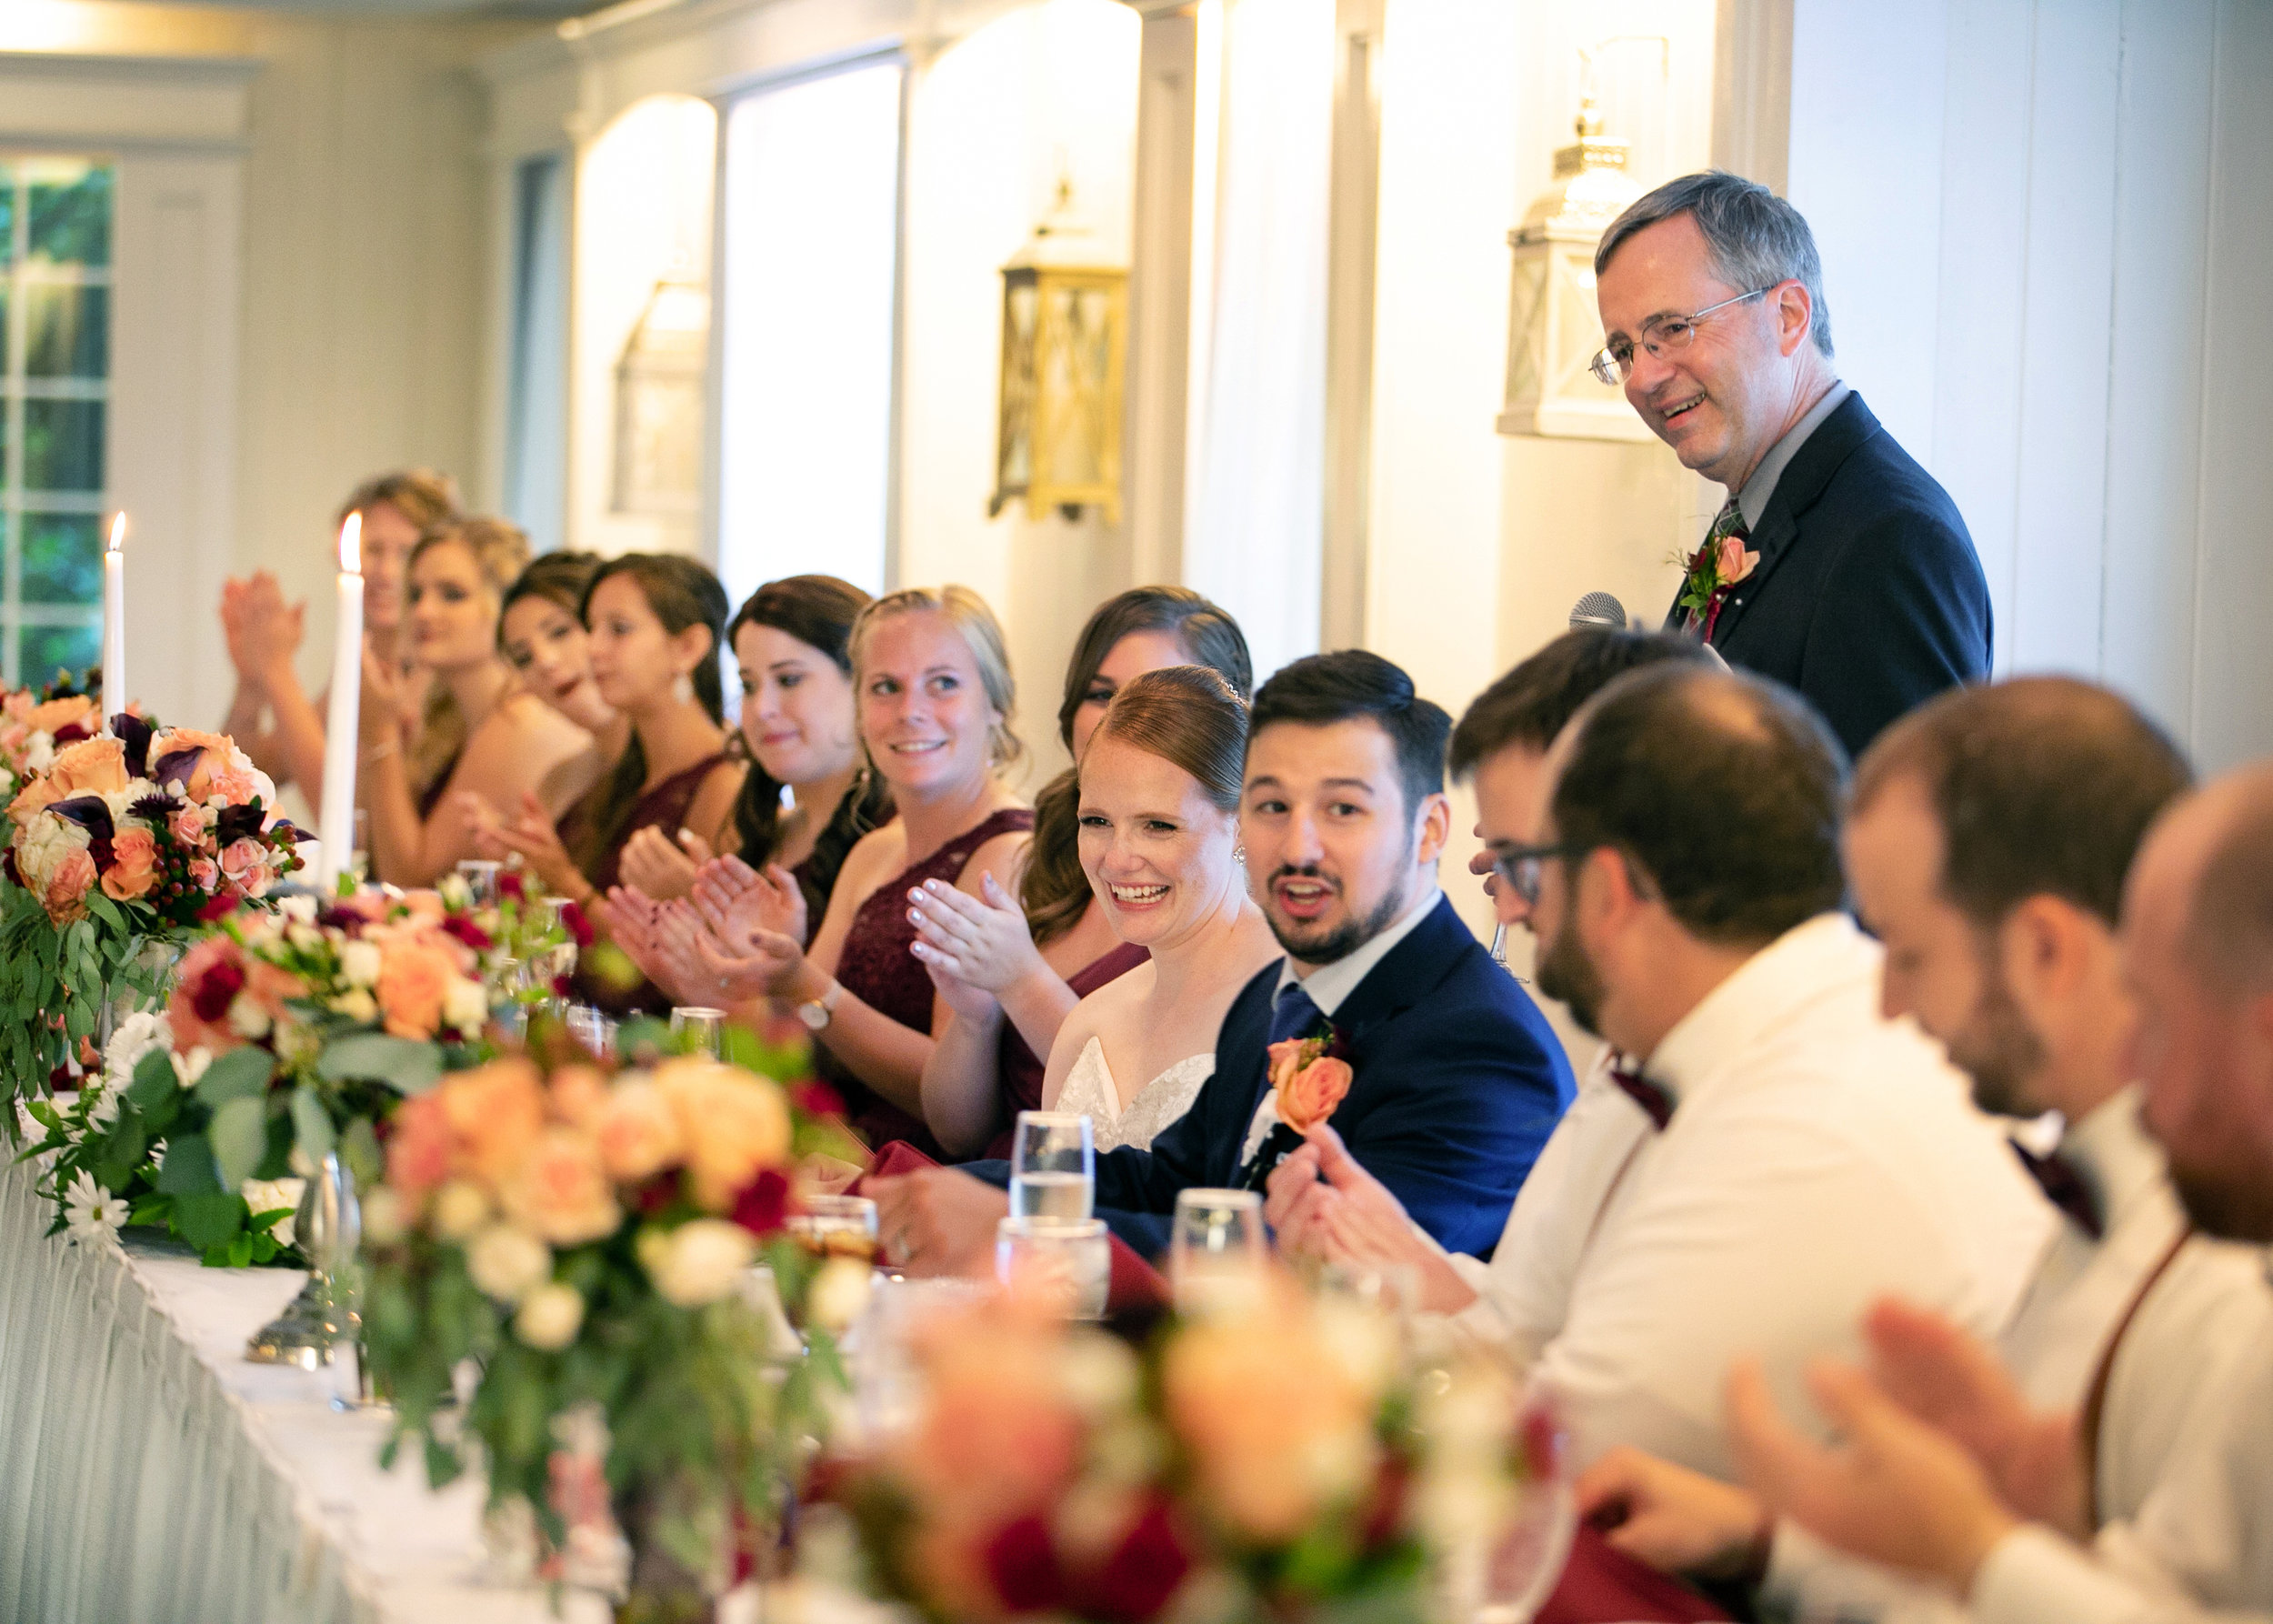 Traditional Head Table (31 One Photo)